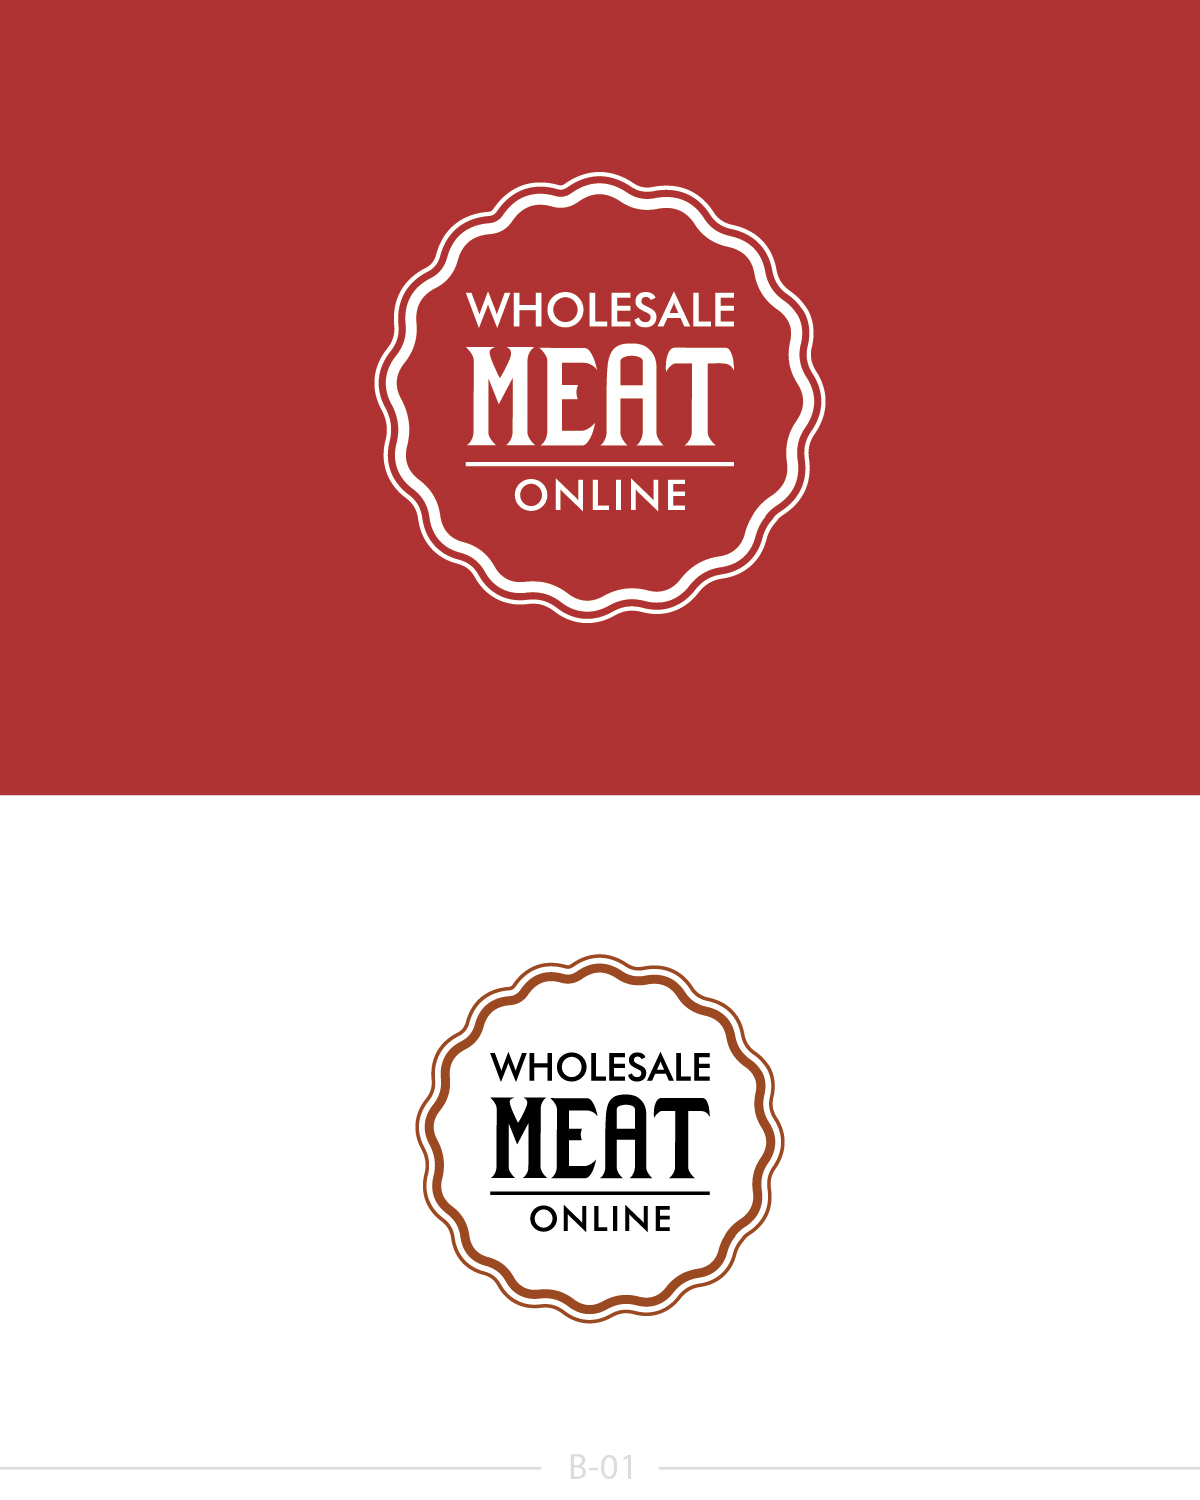 Elegant, Playful, Business Logo Design for Wholesale Meat Online by